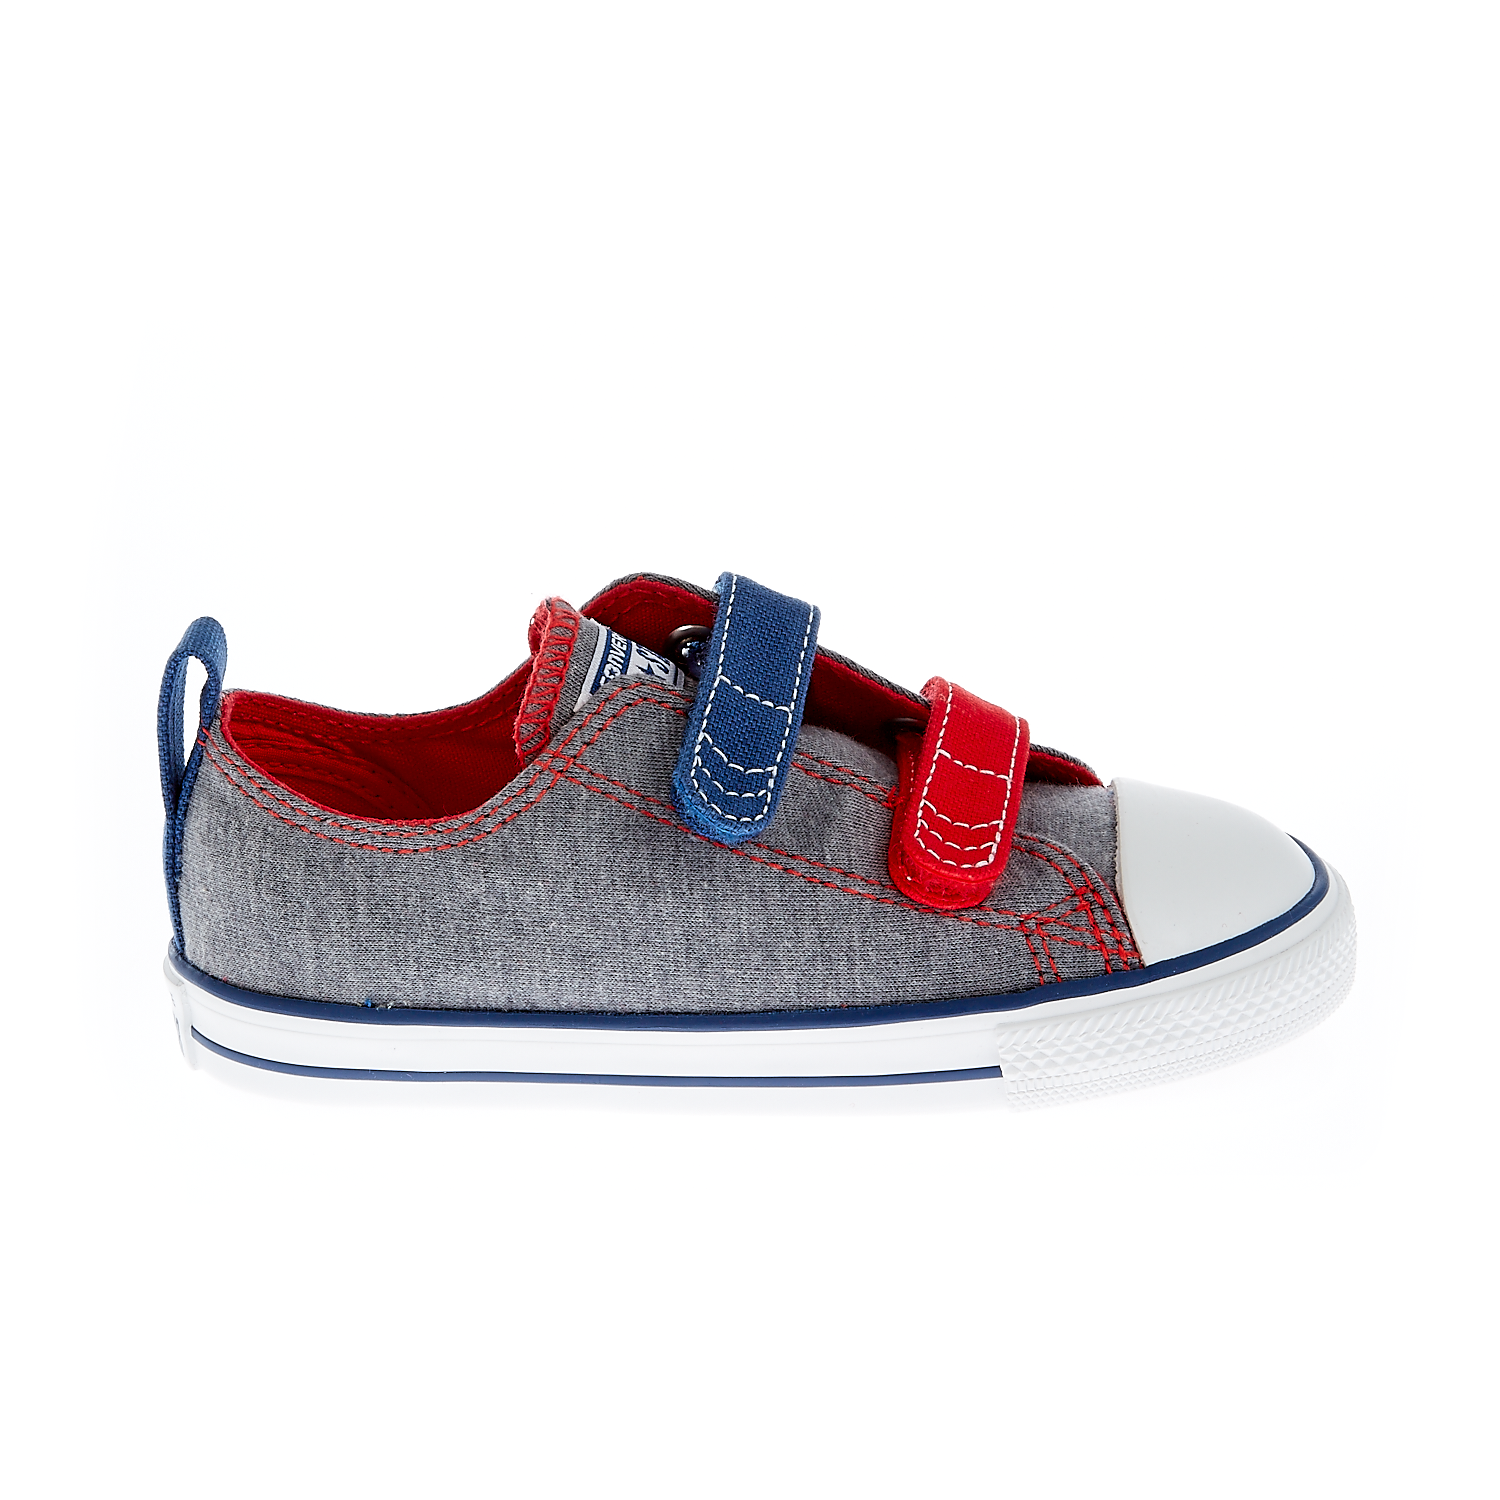 CONVERSE - Βρεφικά παπούτσια Chuck Taylor γκρι παιδικά baby παπούτσια sneakers